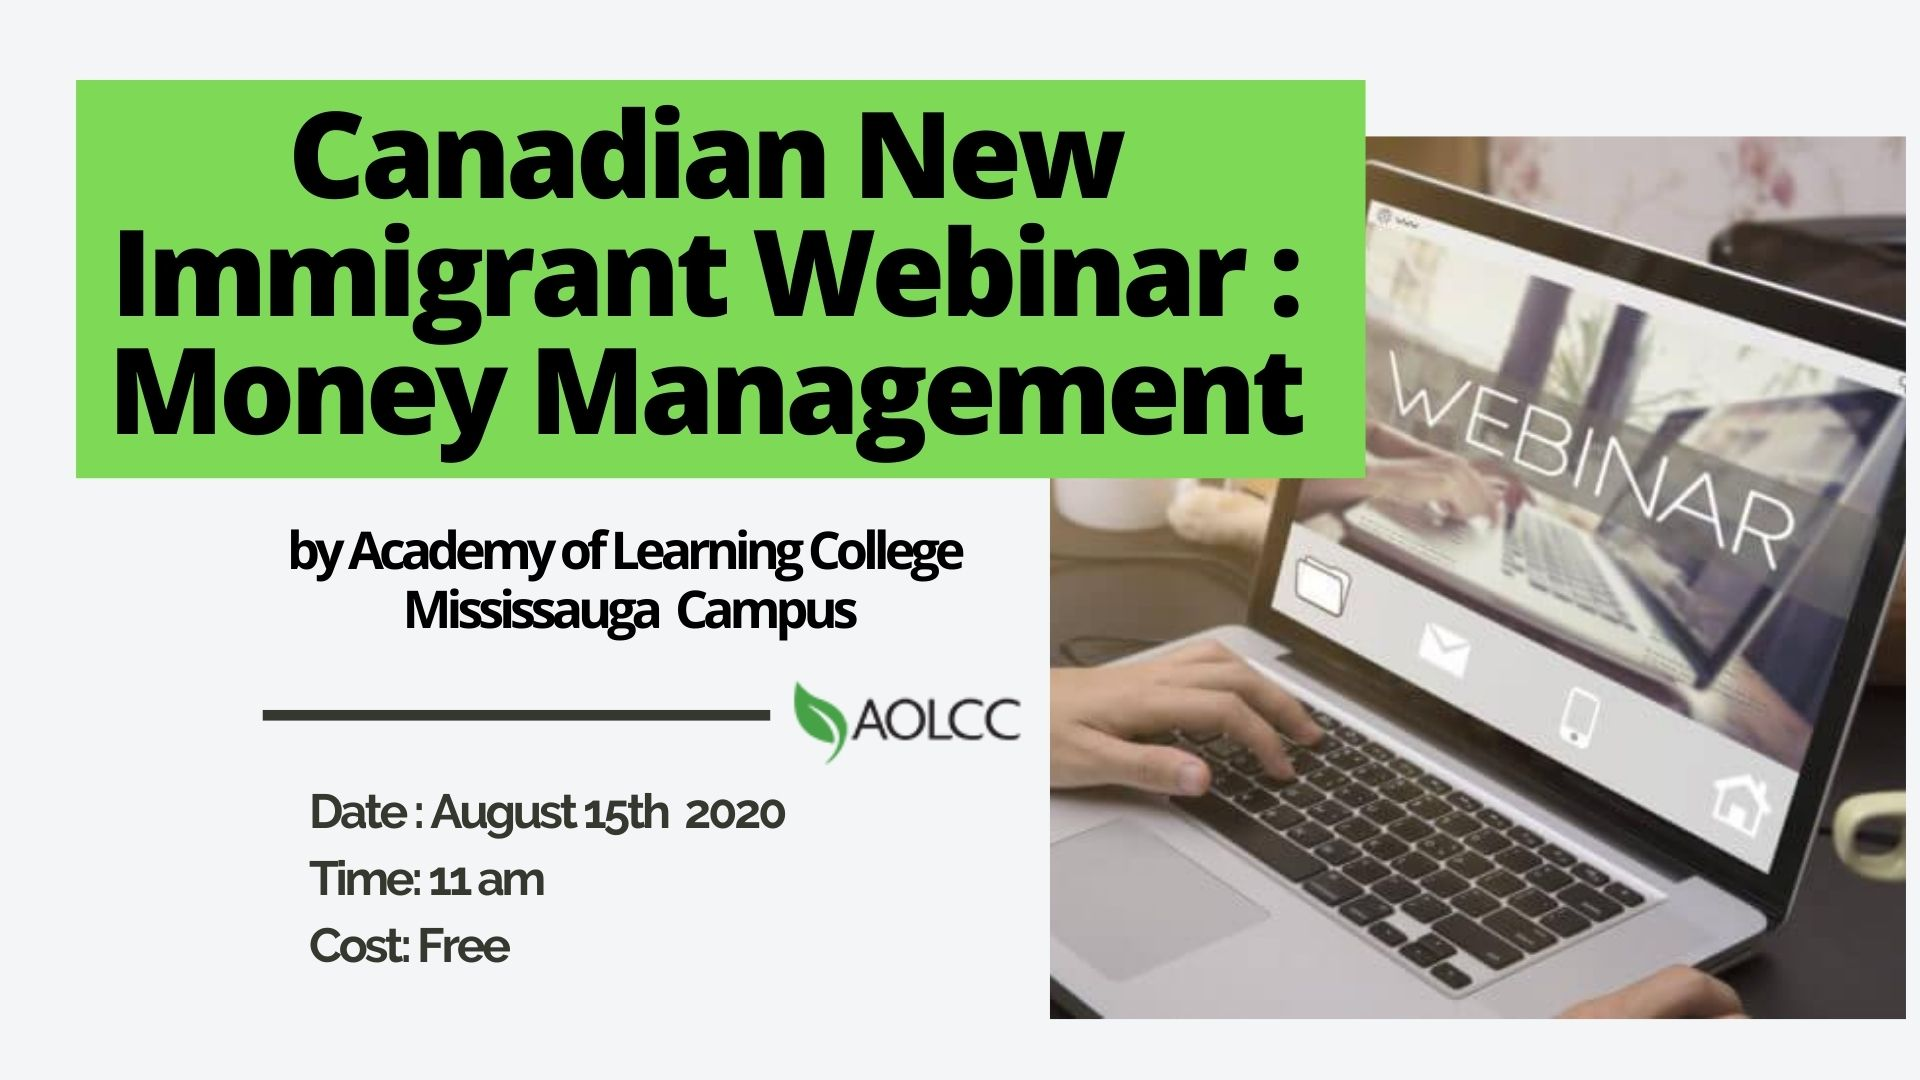 Canadian New Immigrant Webinar : Money Management